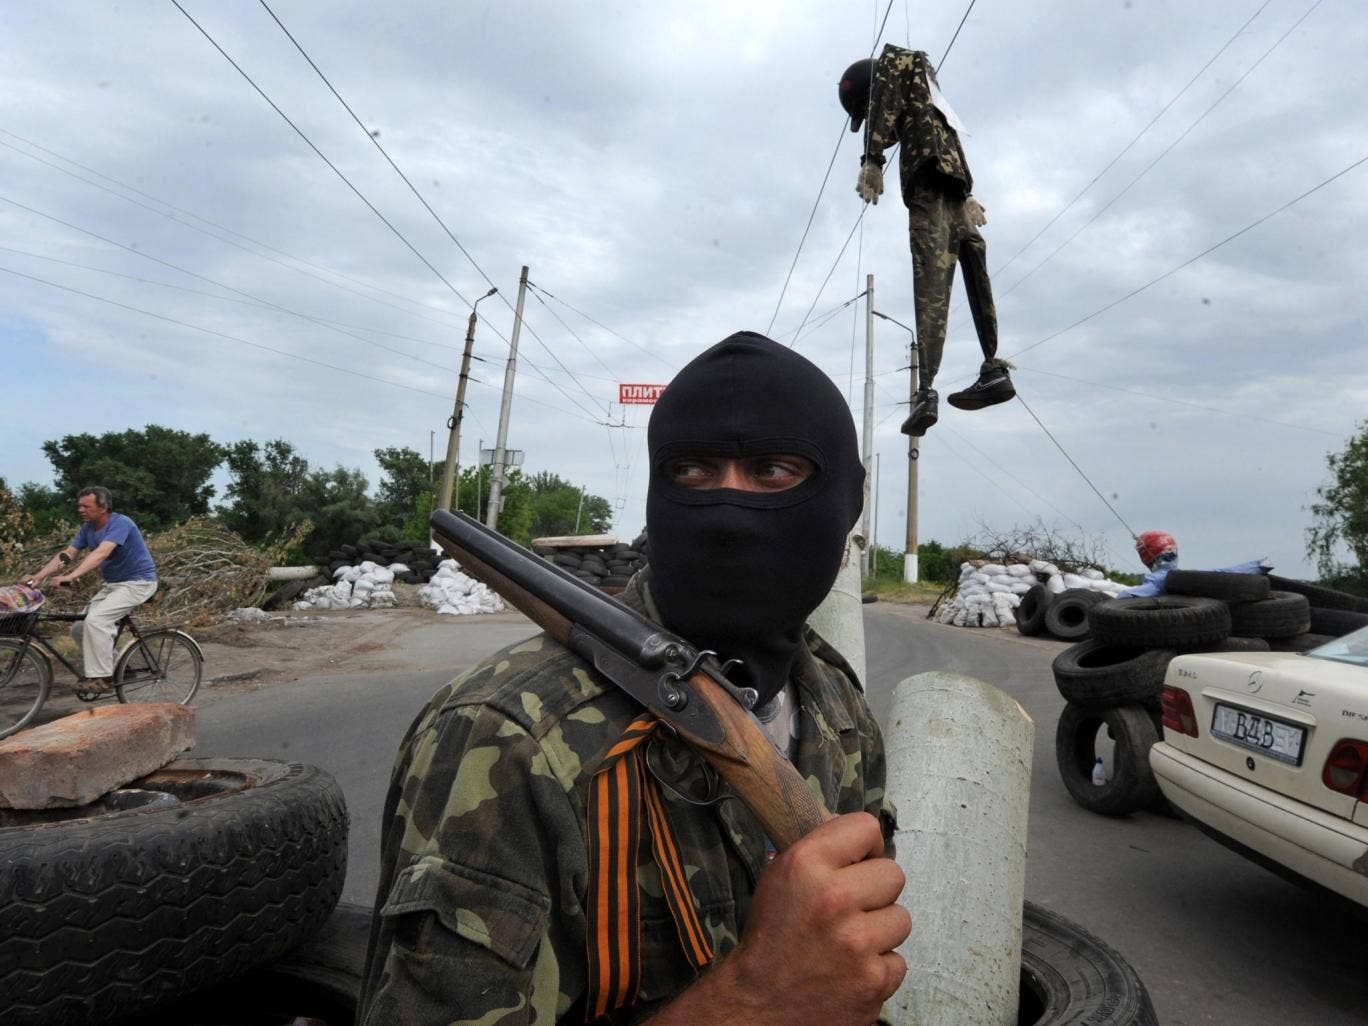 A masked pro-Russian gunman guards at a check-point near the eastern Ukrainian city of Slavyansk on Friday. At least five were killed yesterday in fighting near Ukraine's eastern hub of Donetsk